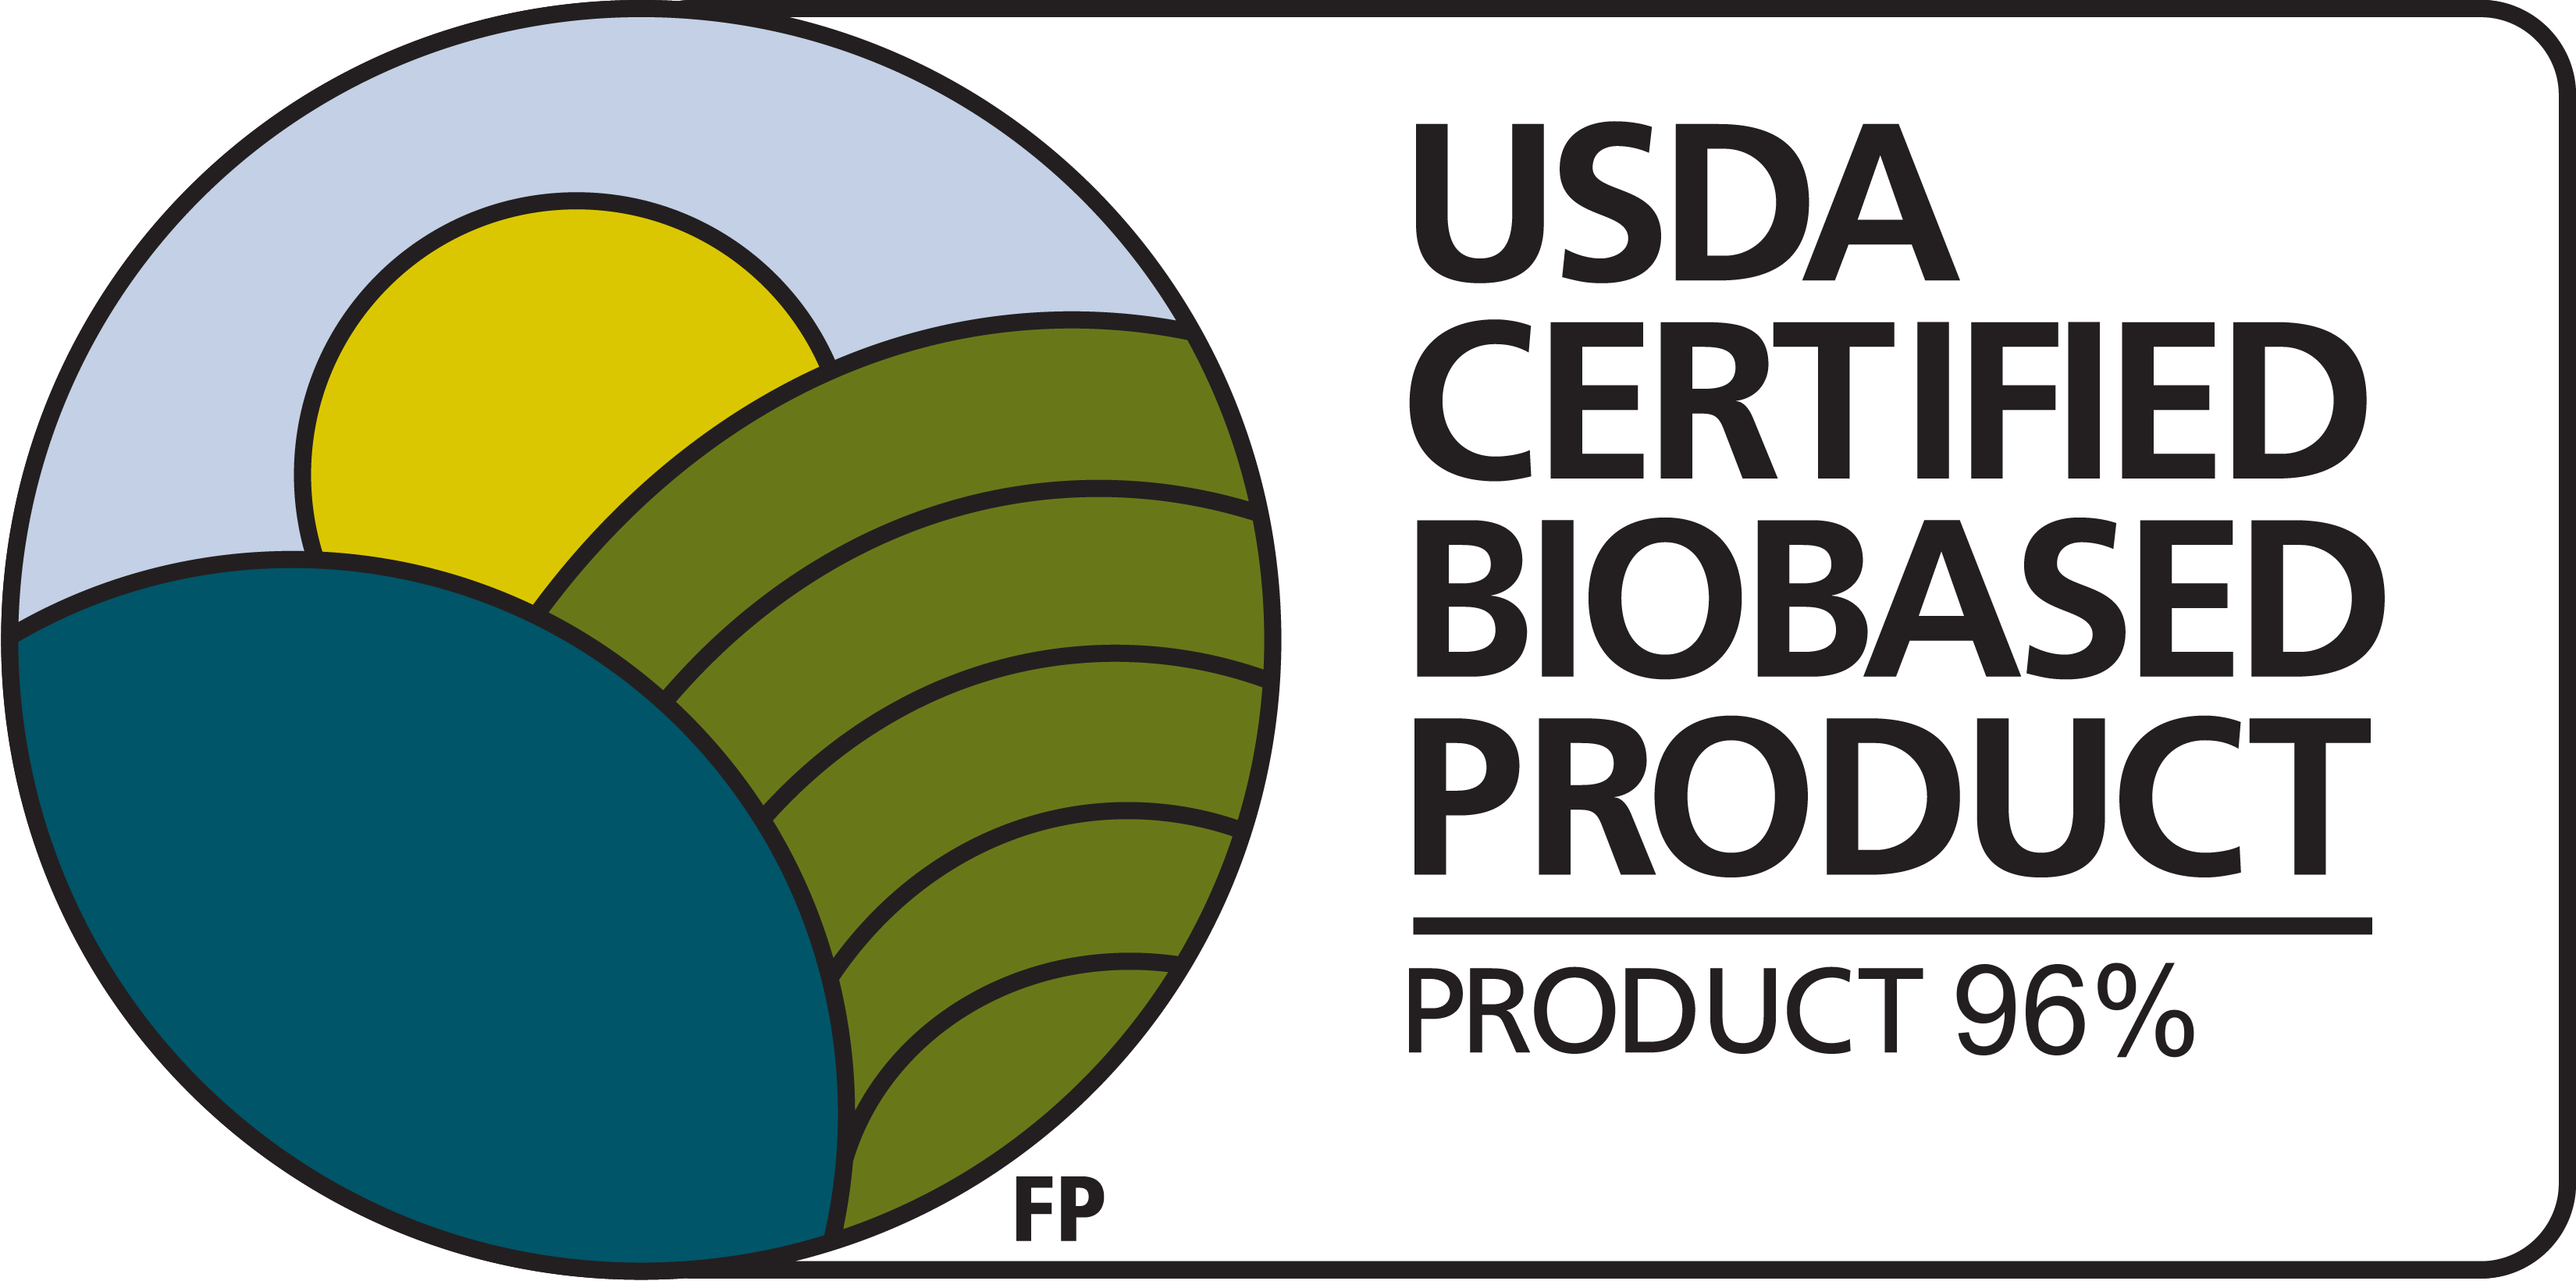 USDA 96 percent bio based product logo